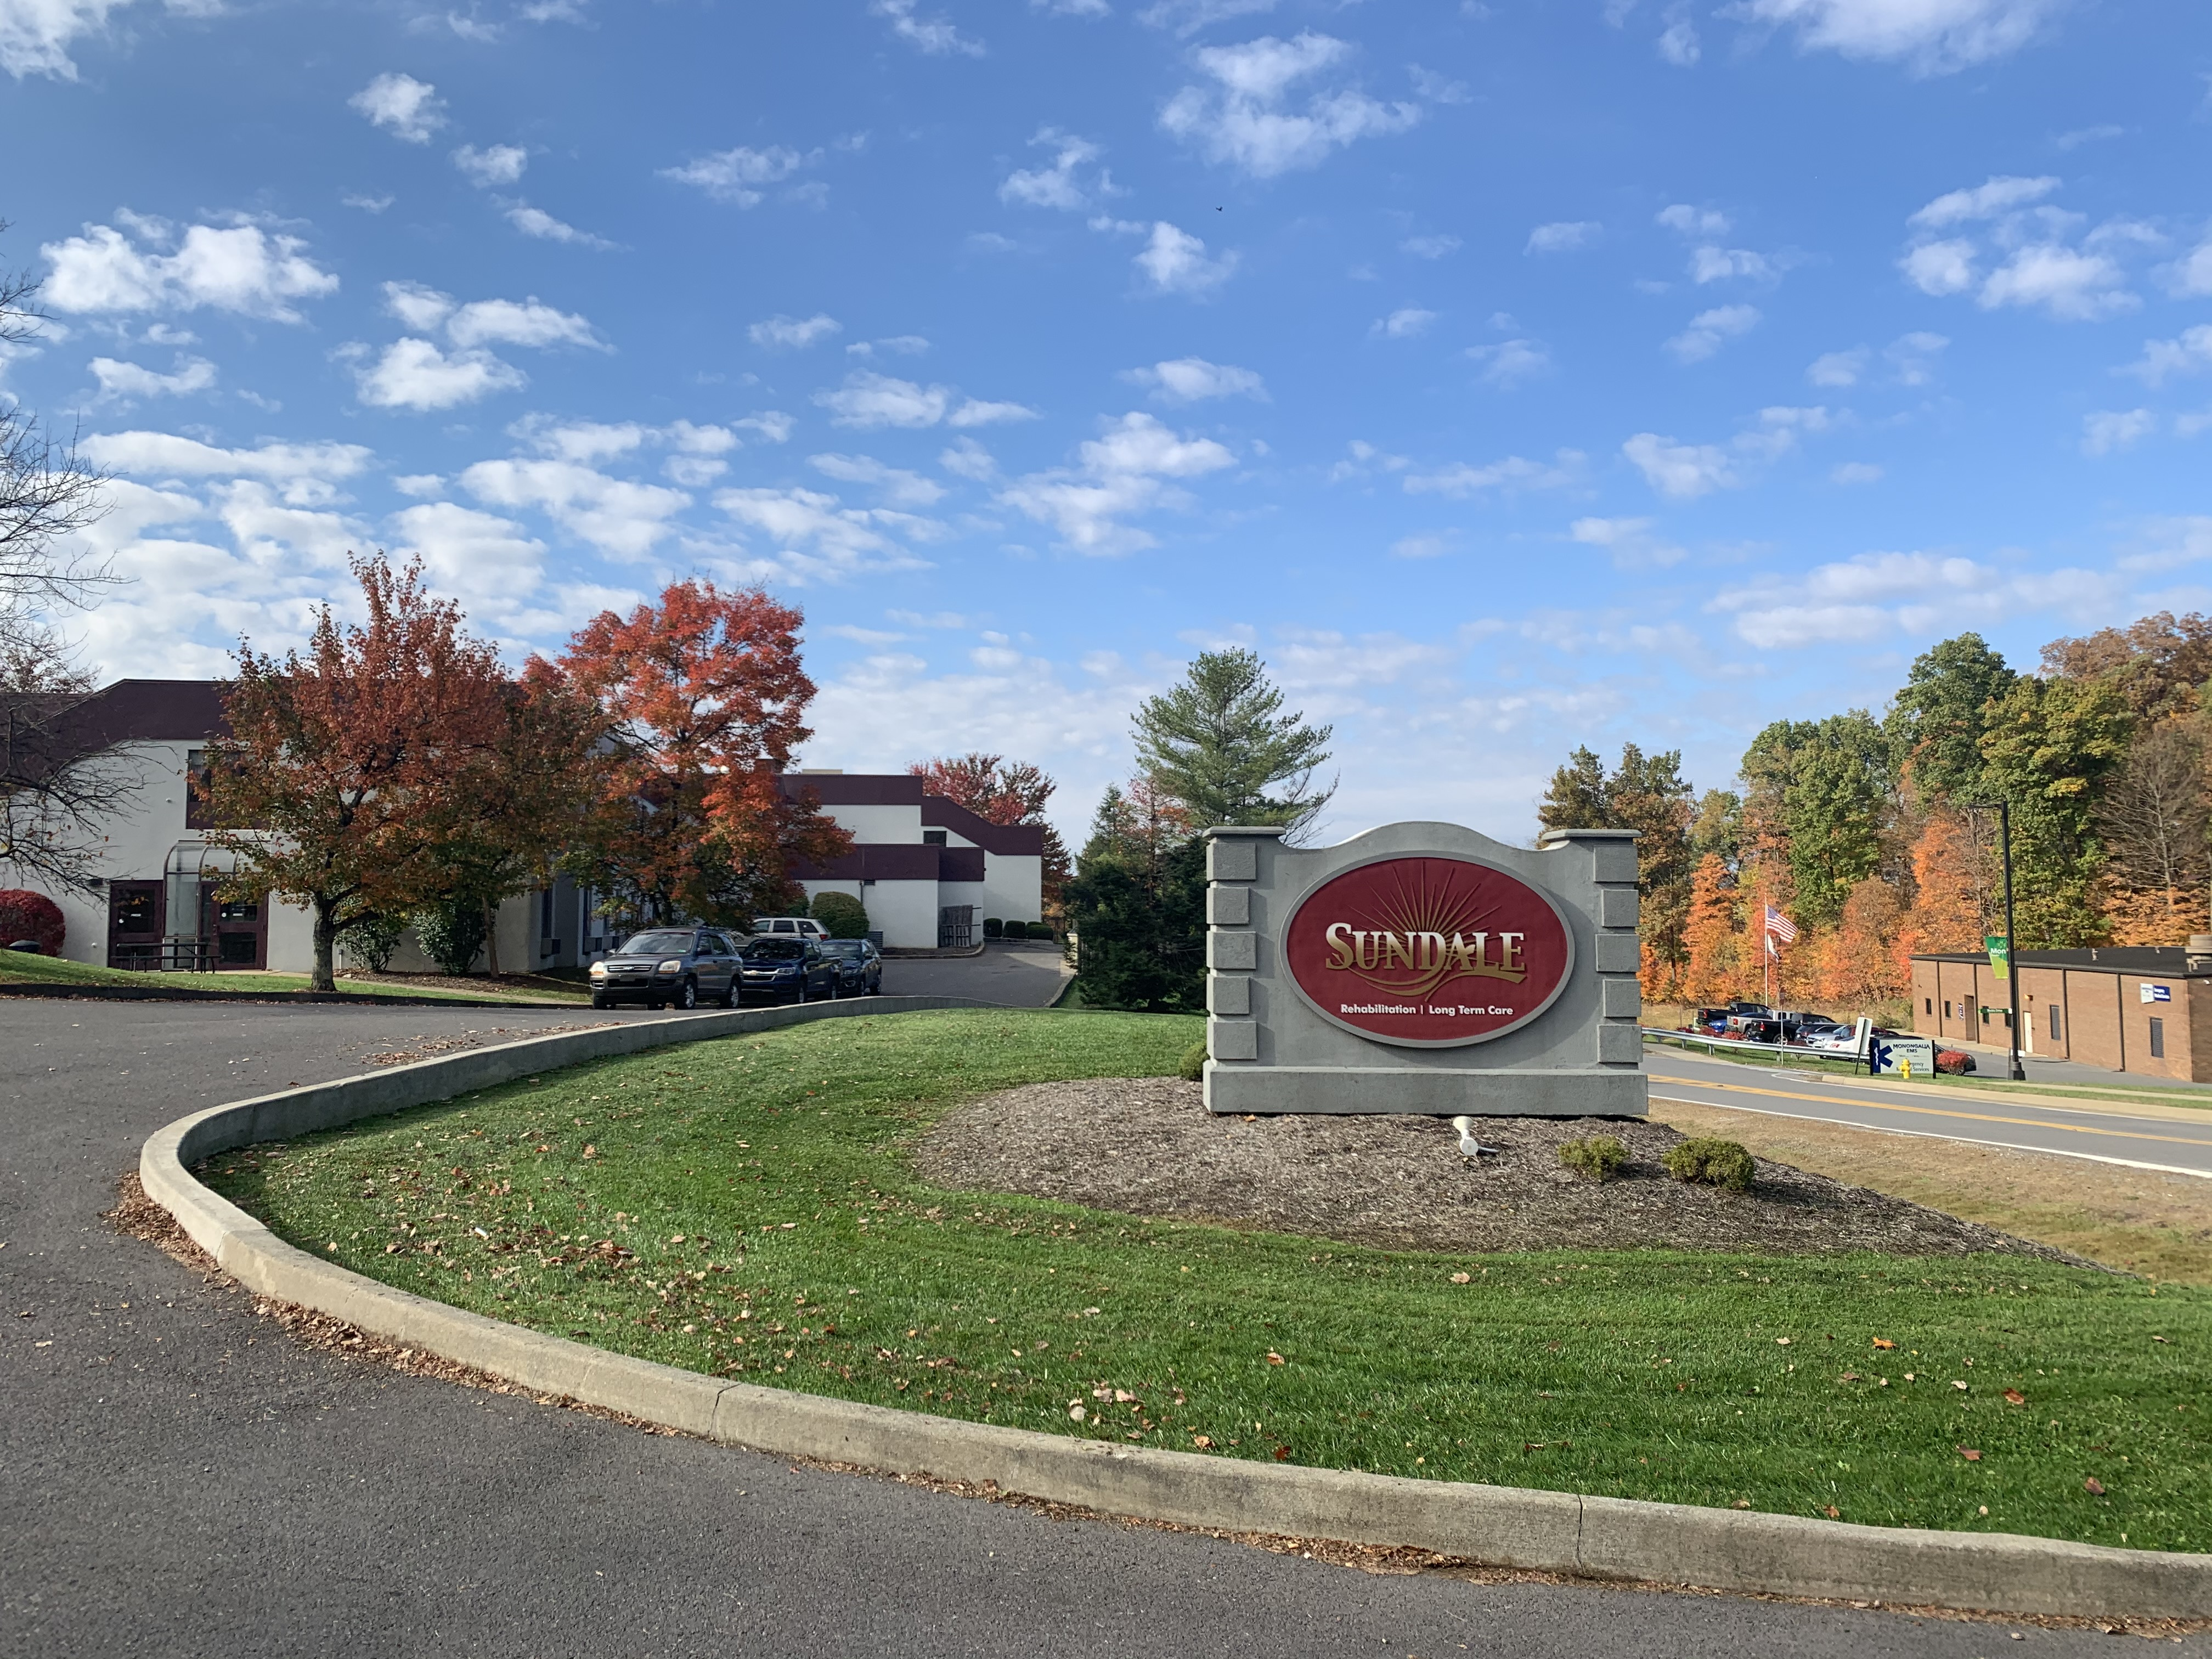 Sundale Nursing Home Confirms 4 Residents And 3 Staff Members Have Tested Positive For Covid 19 Wvns